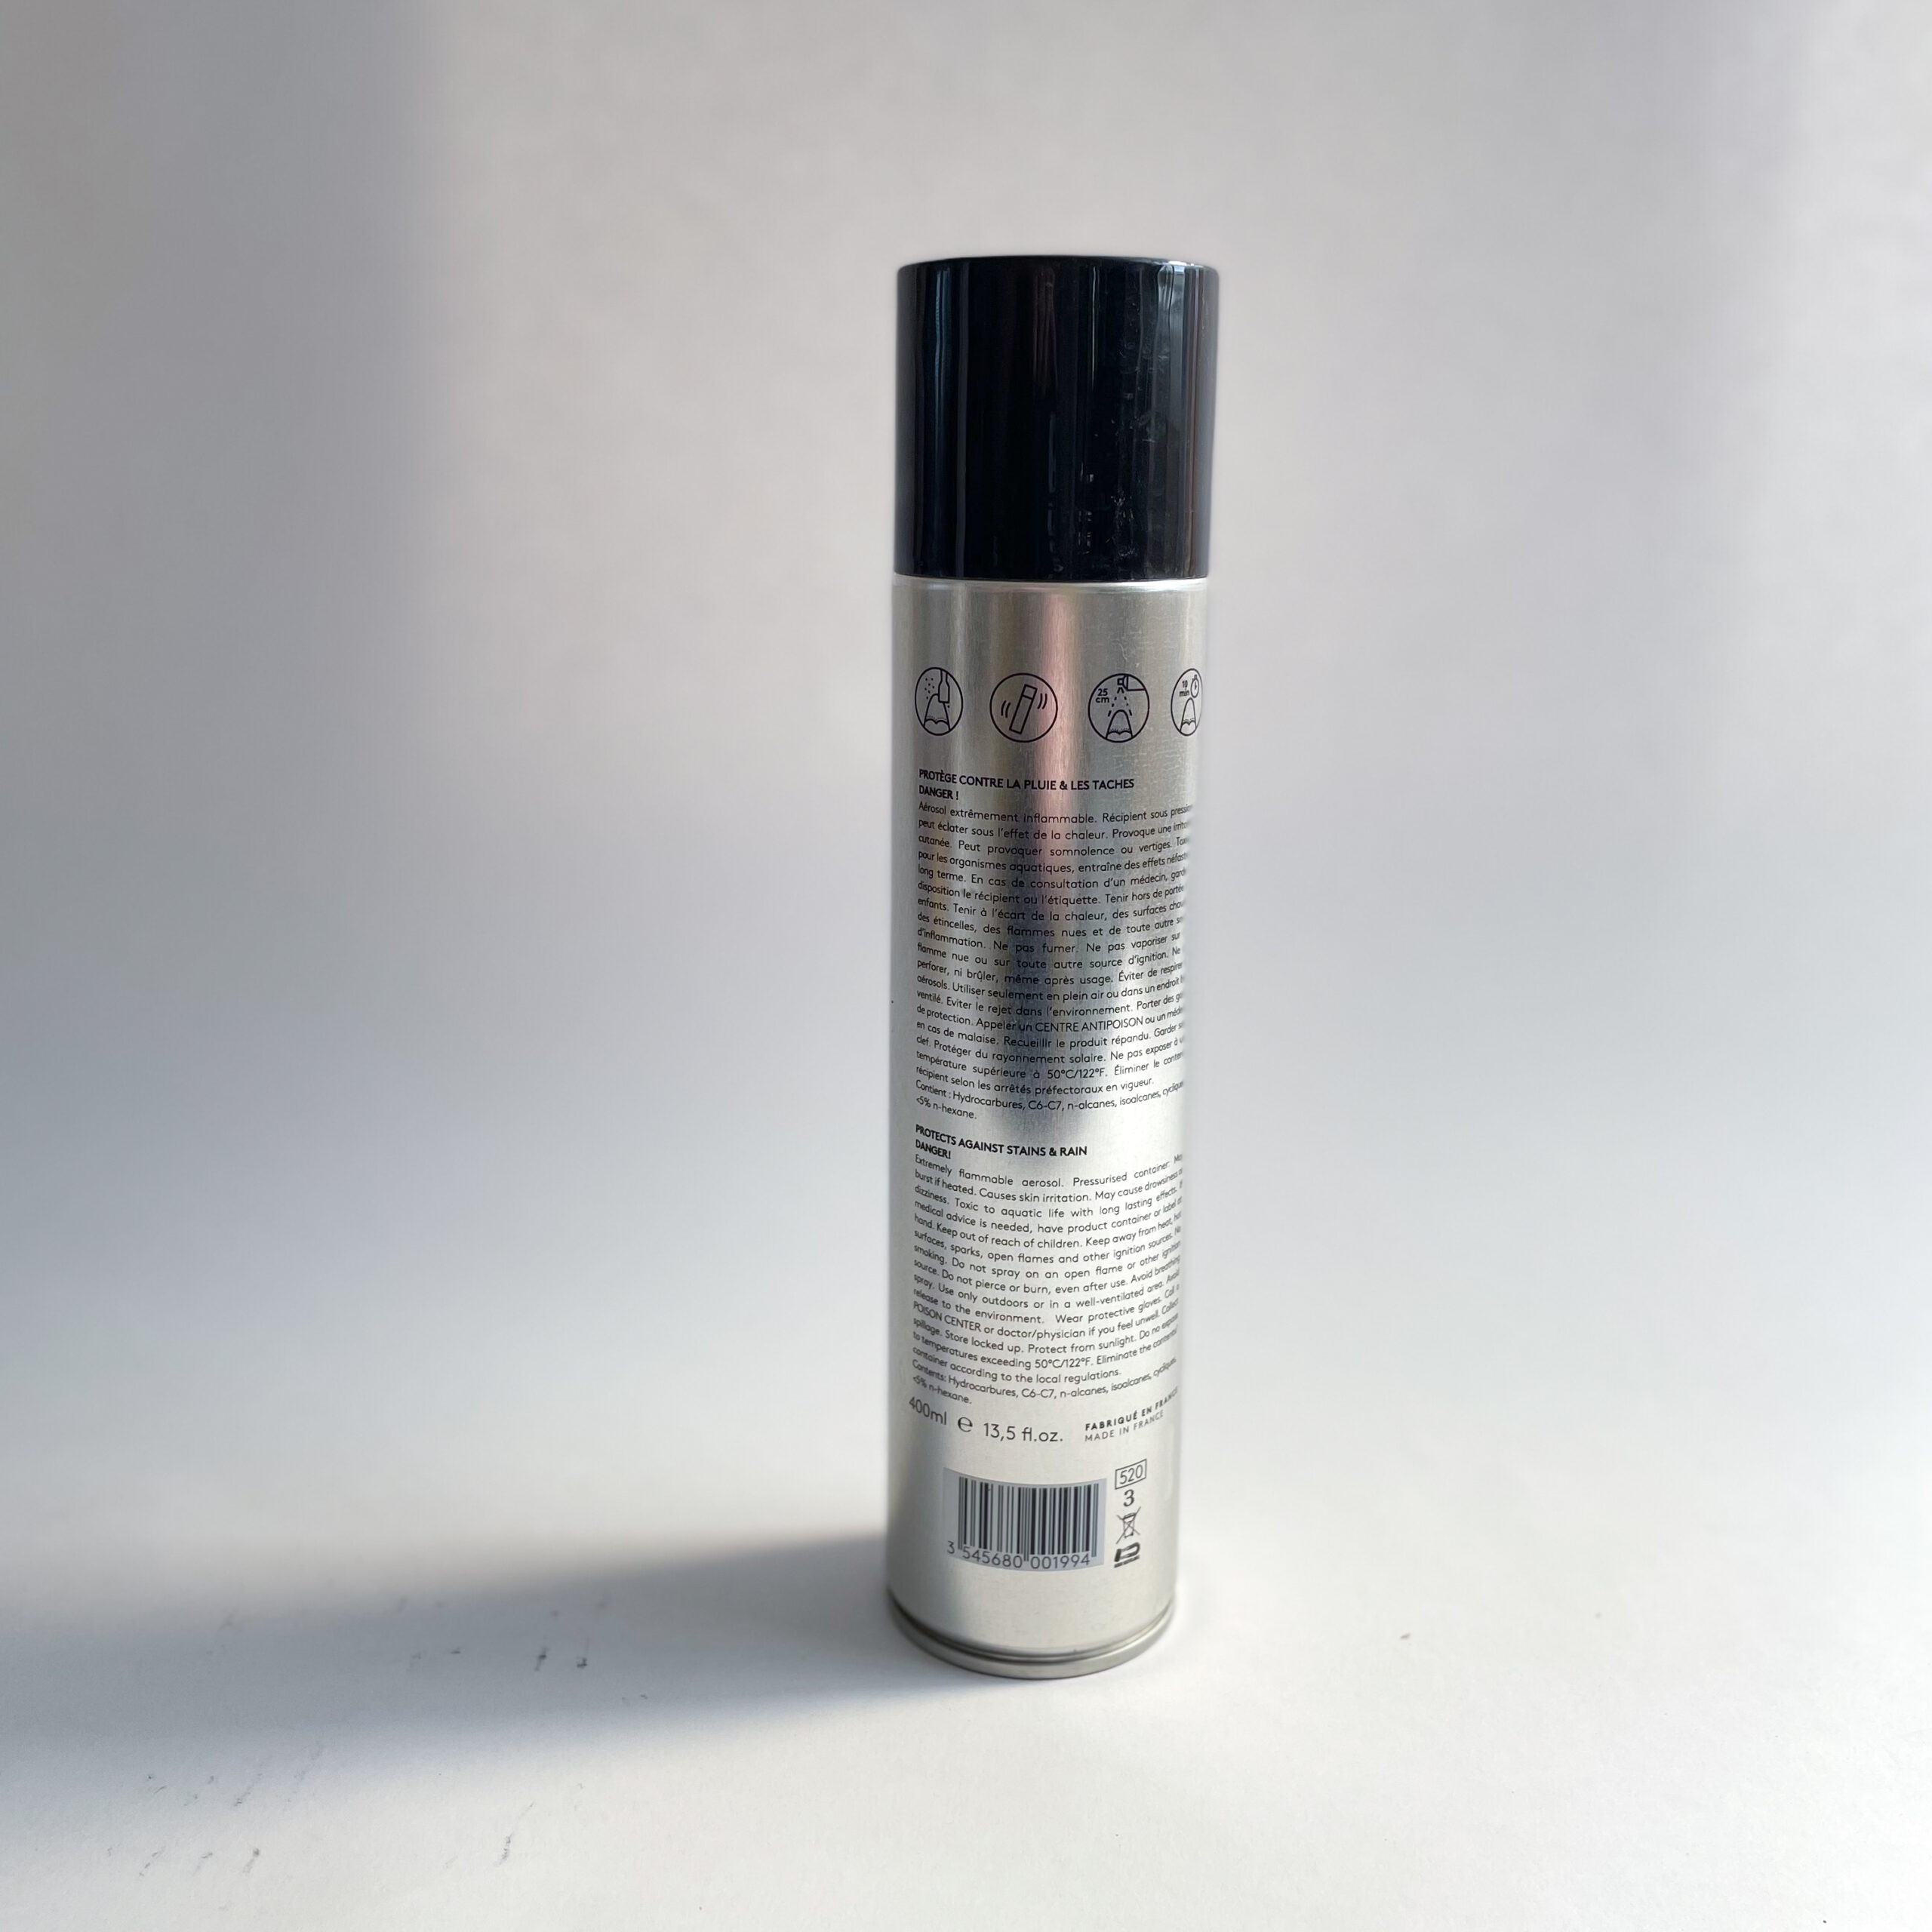 The back of a can of Famaco Waterproofer Spray